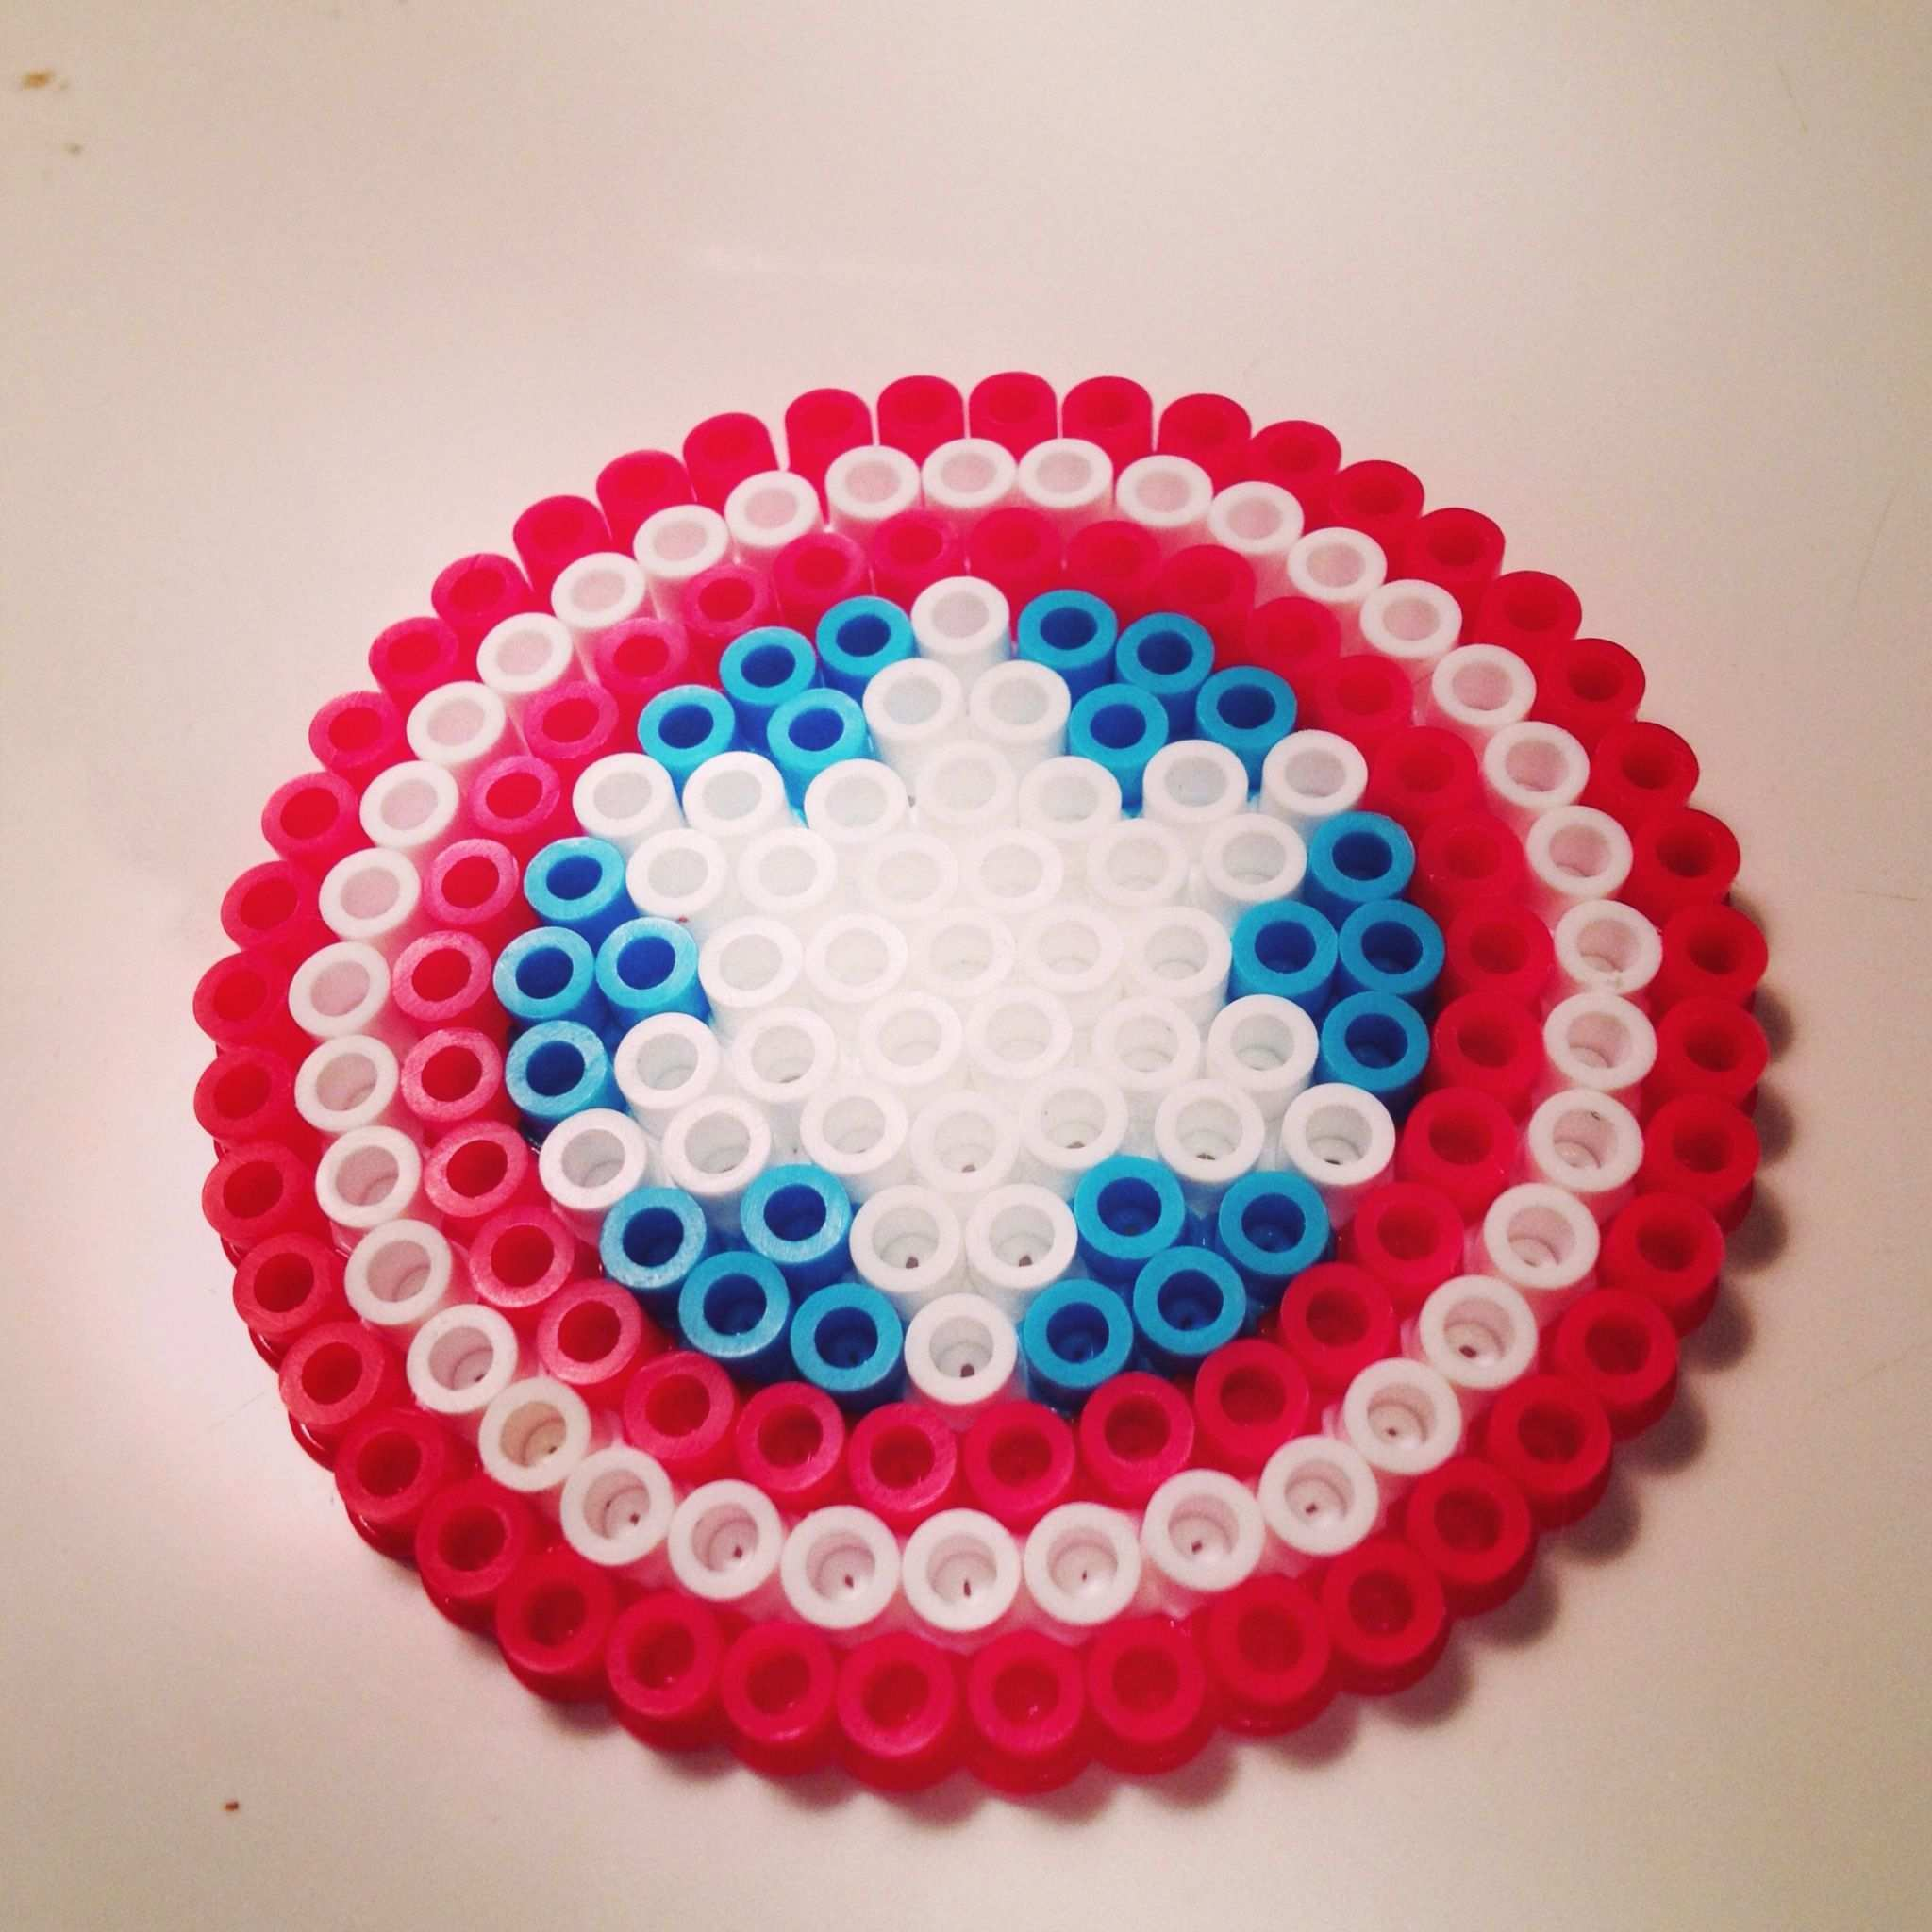 Captain America Shield Perler Beads By Kate Chaplin Diy Perler Beads Hama Beads Design Perler Beads Designs